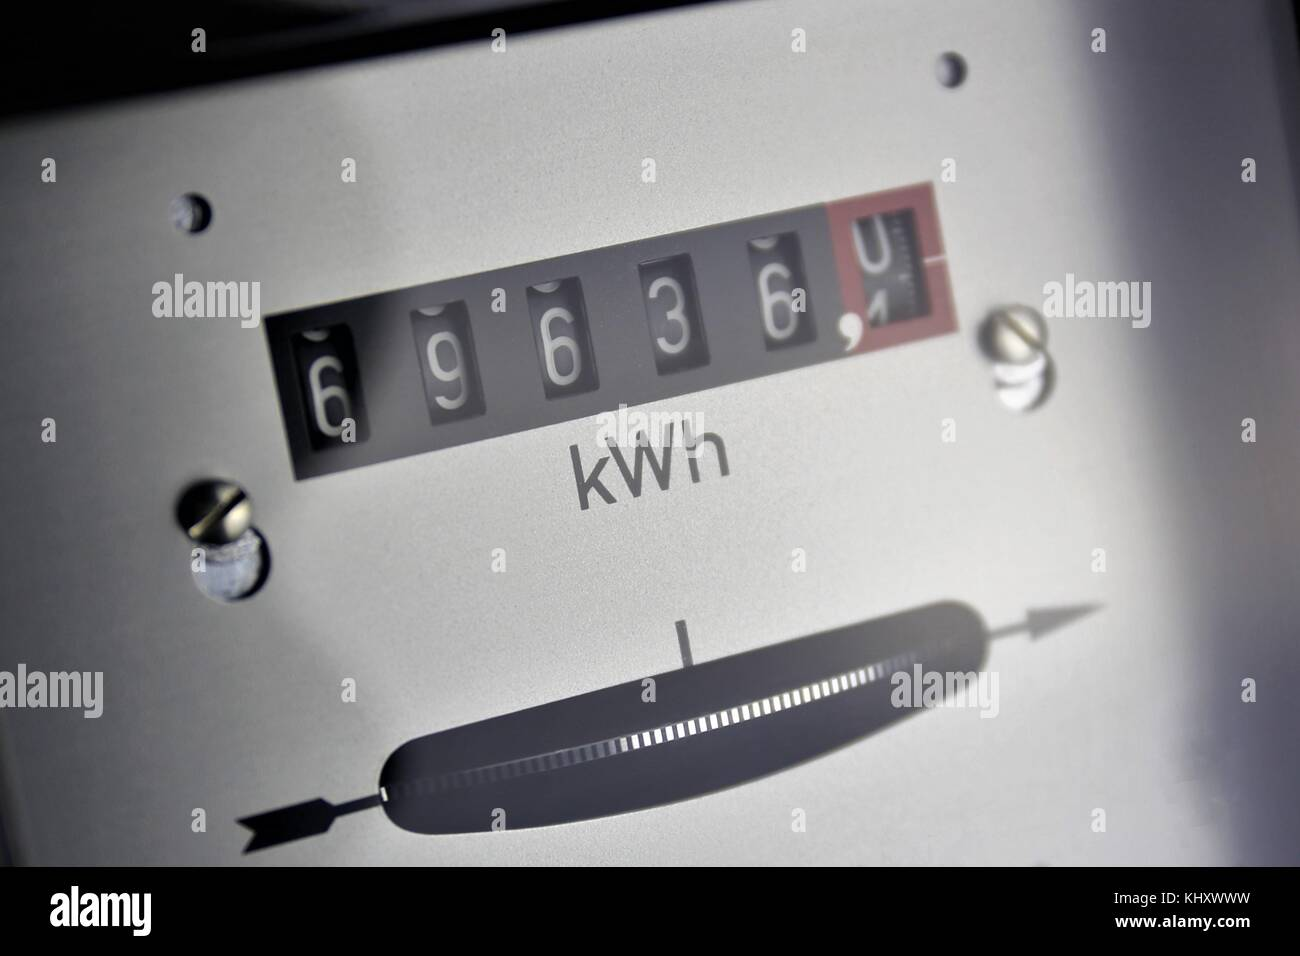 An Image of a electricity Counter - meter - Stock Image